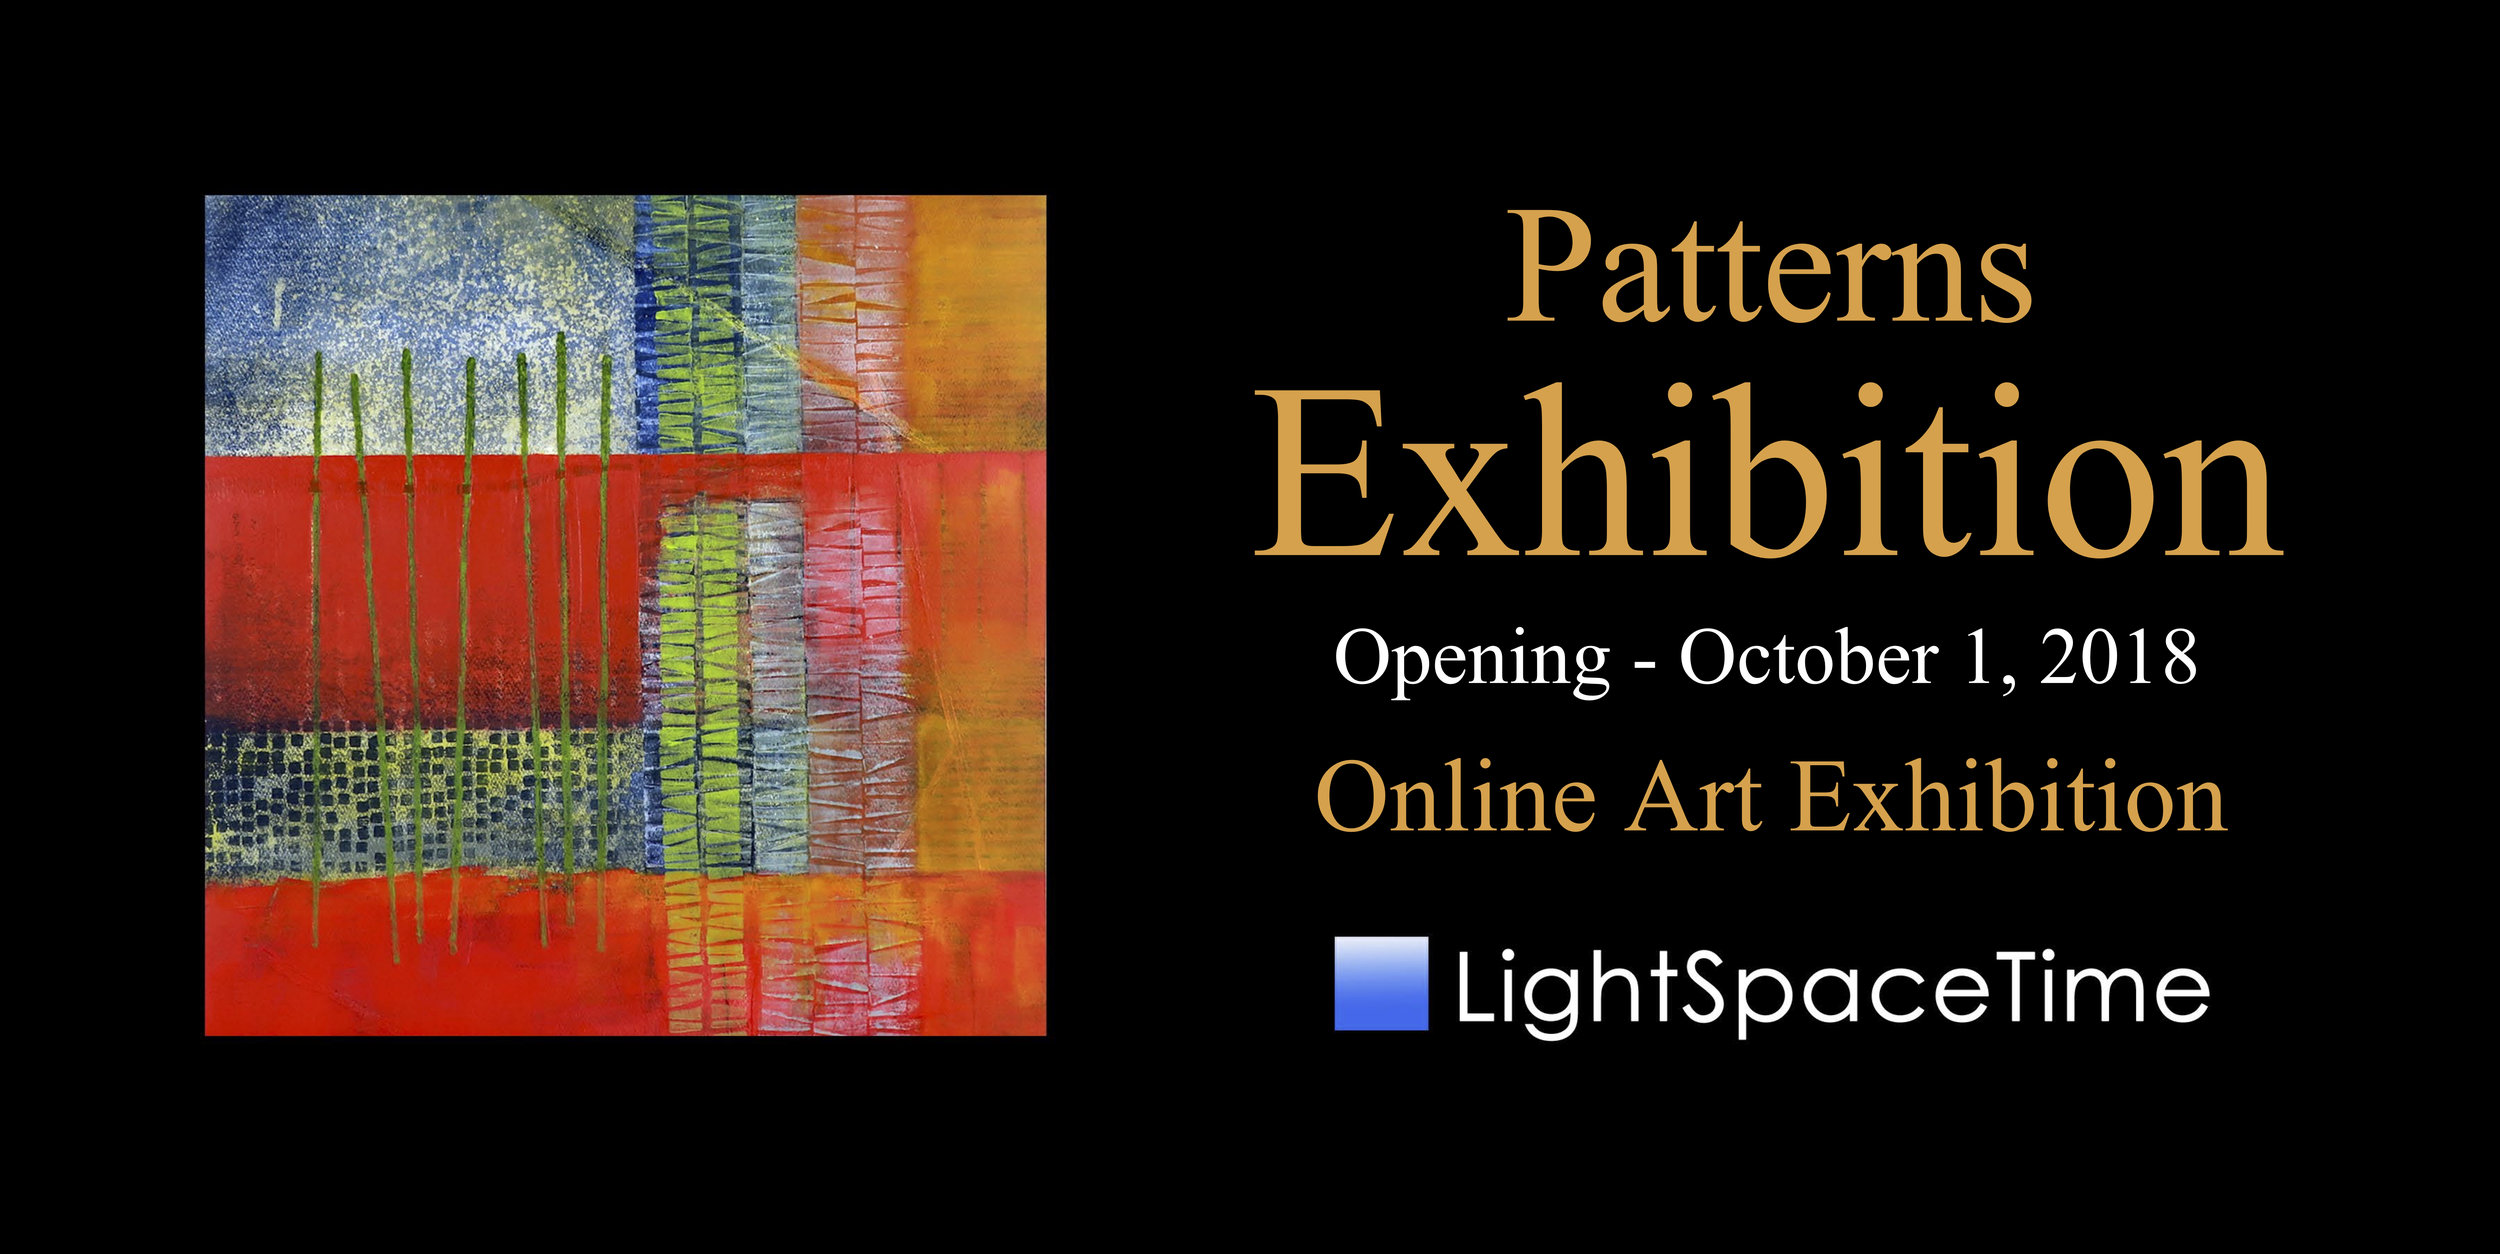 PATTERNS 2018  ART EXHIBITION -  EVENT POSTCARD.jpg